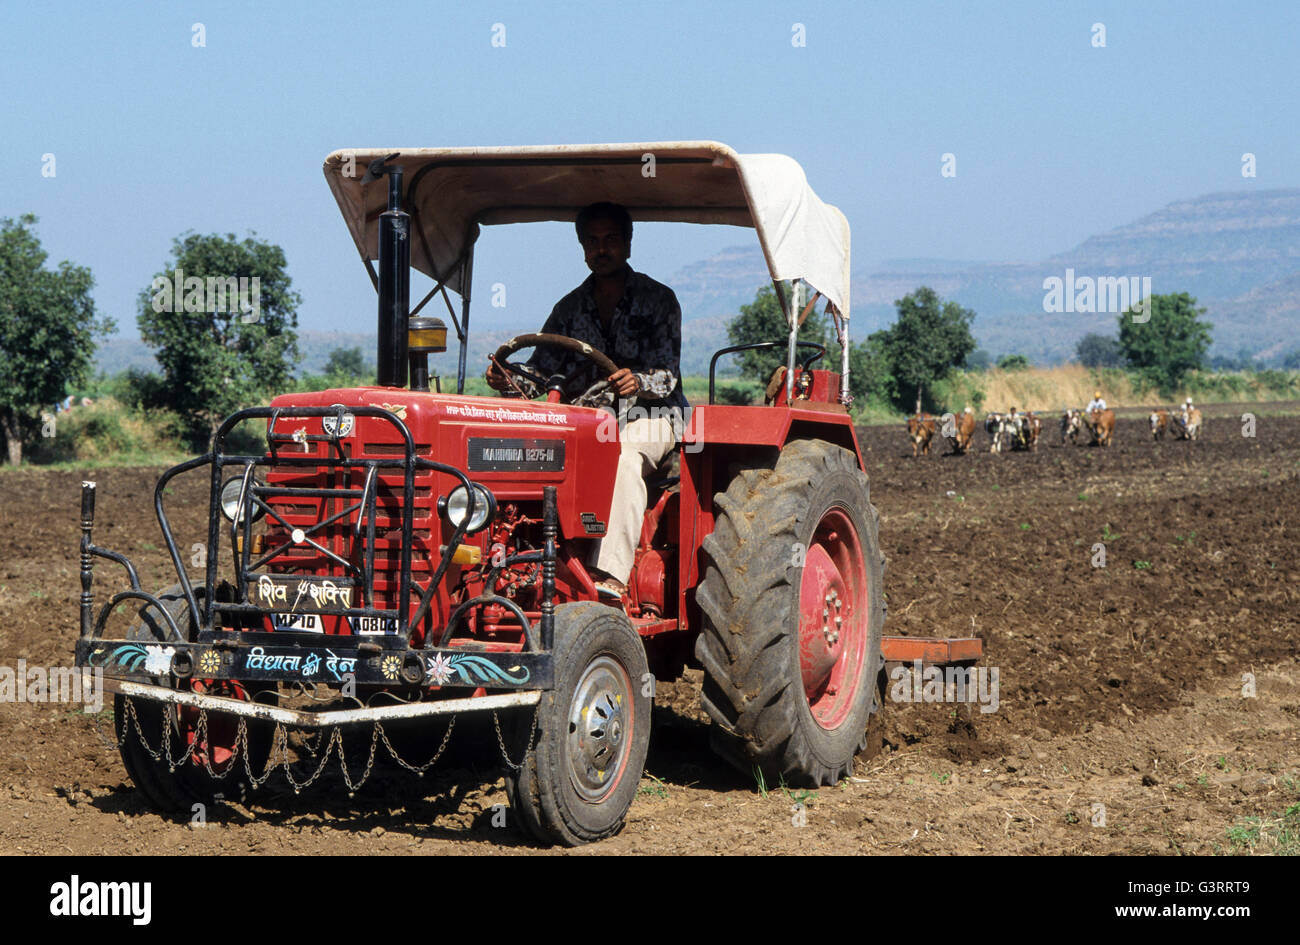 Mahindra Tractor Stock Photos & Mahindra Tractor Stock